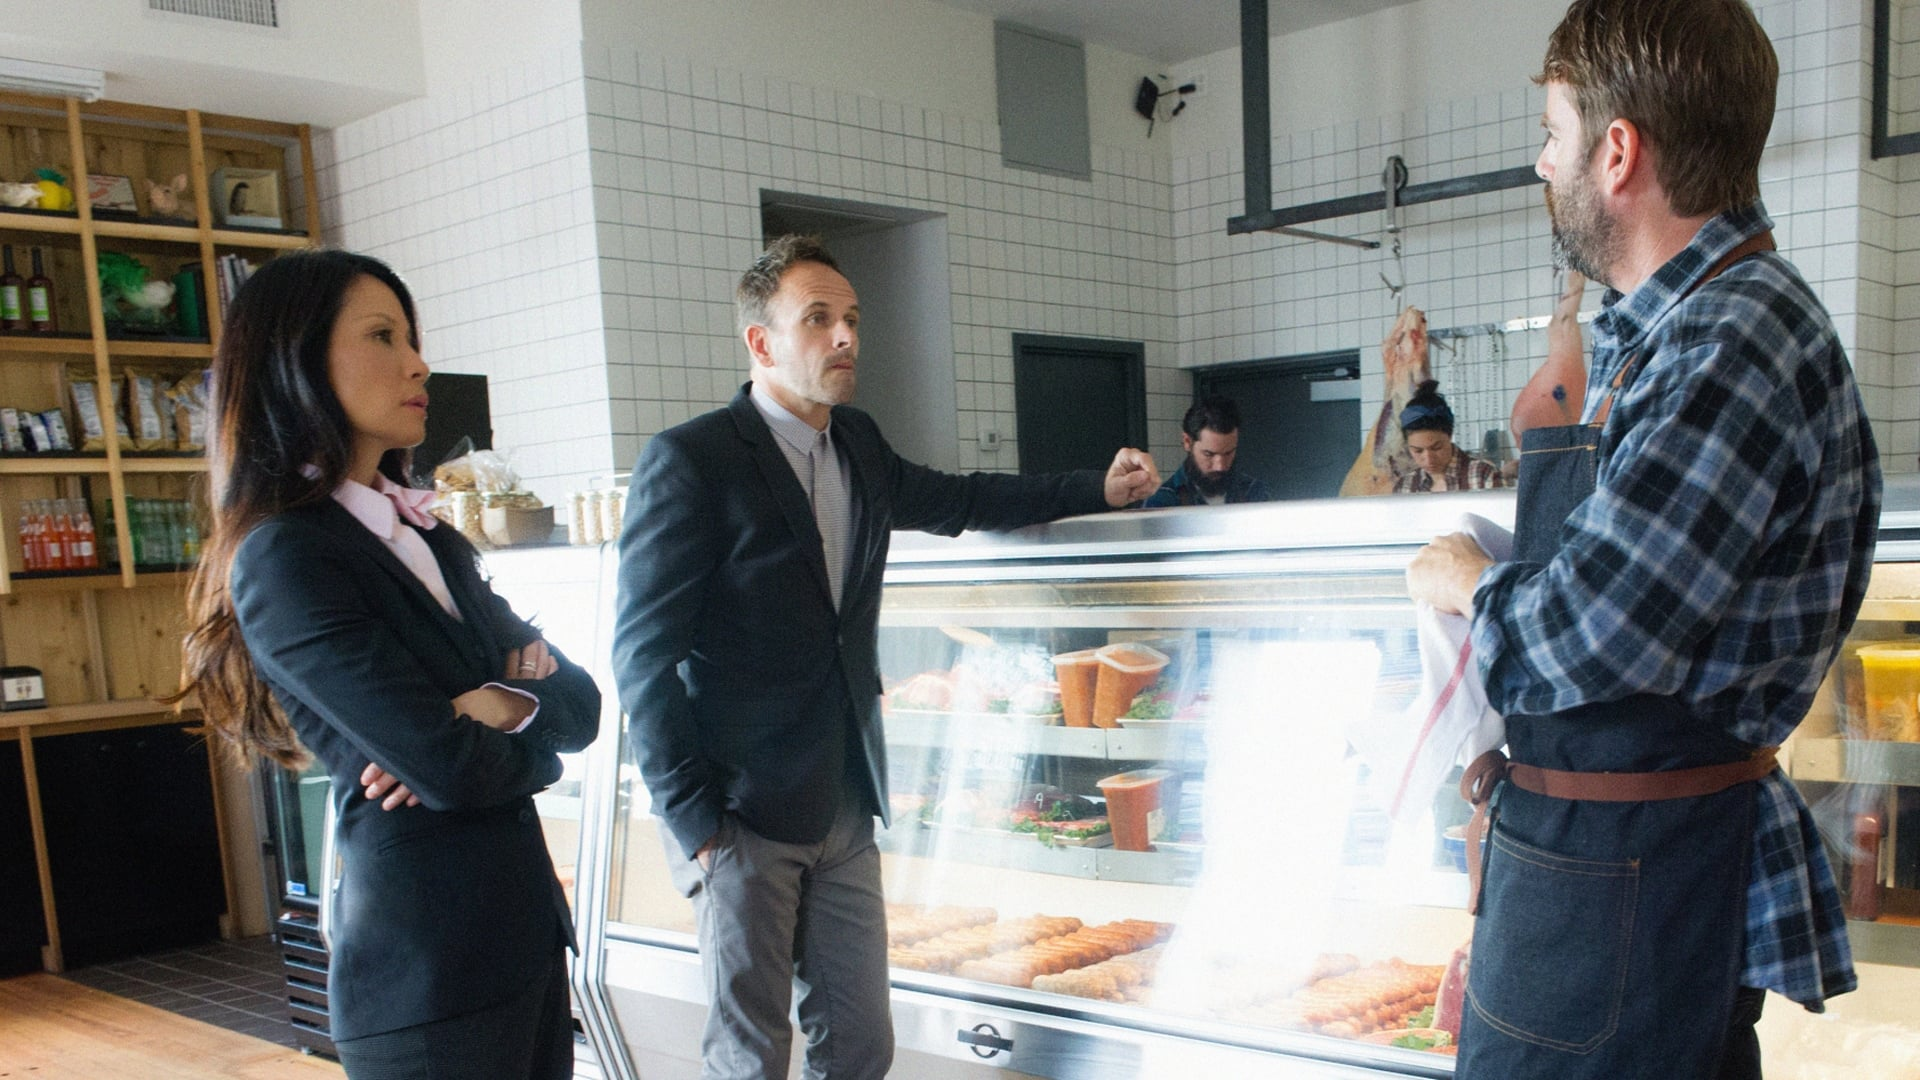 Elementary - Season 5 Episode 8 : How the Sausage Is Made